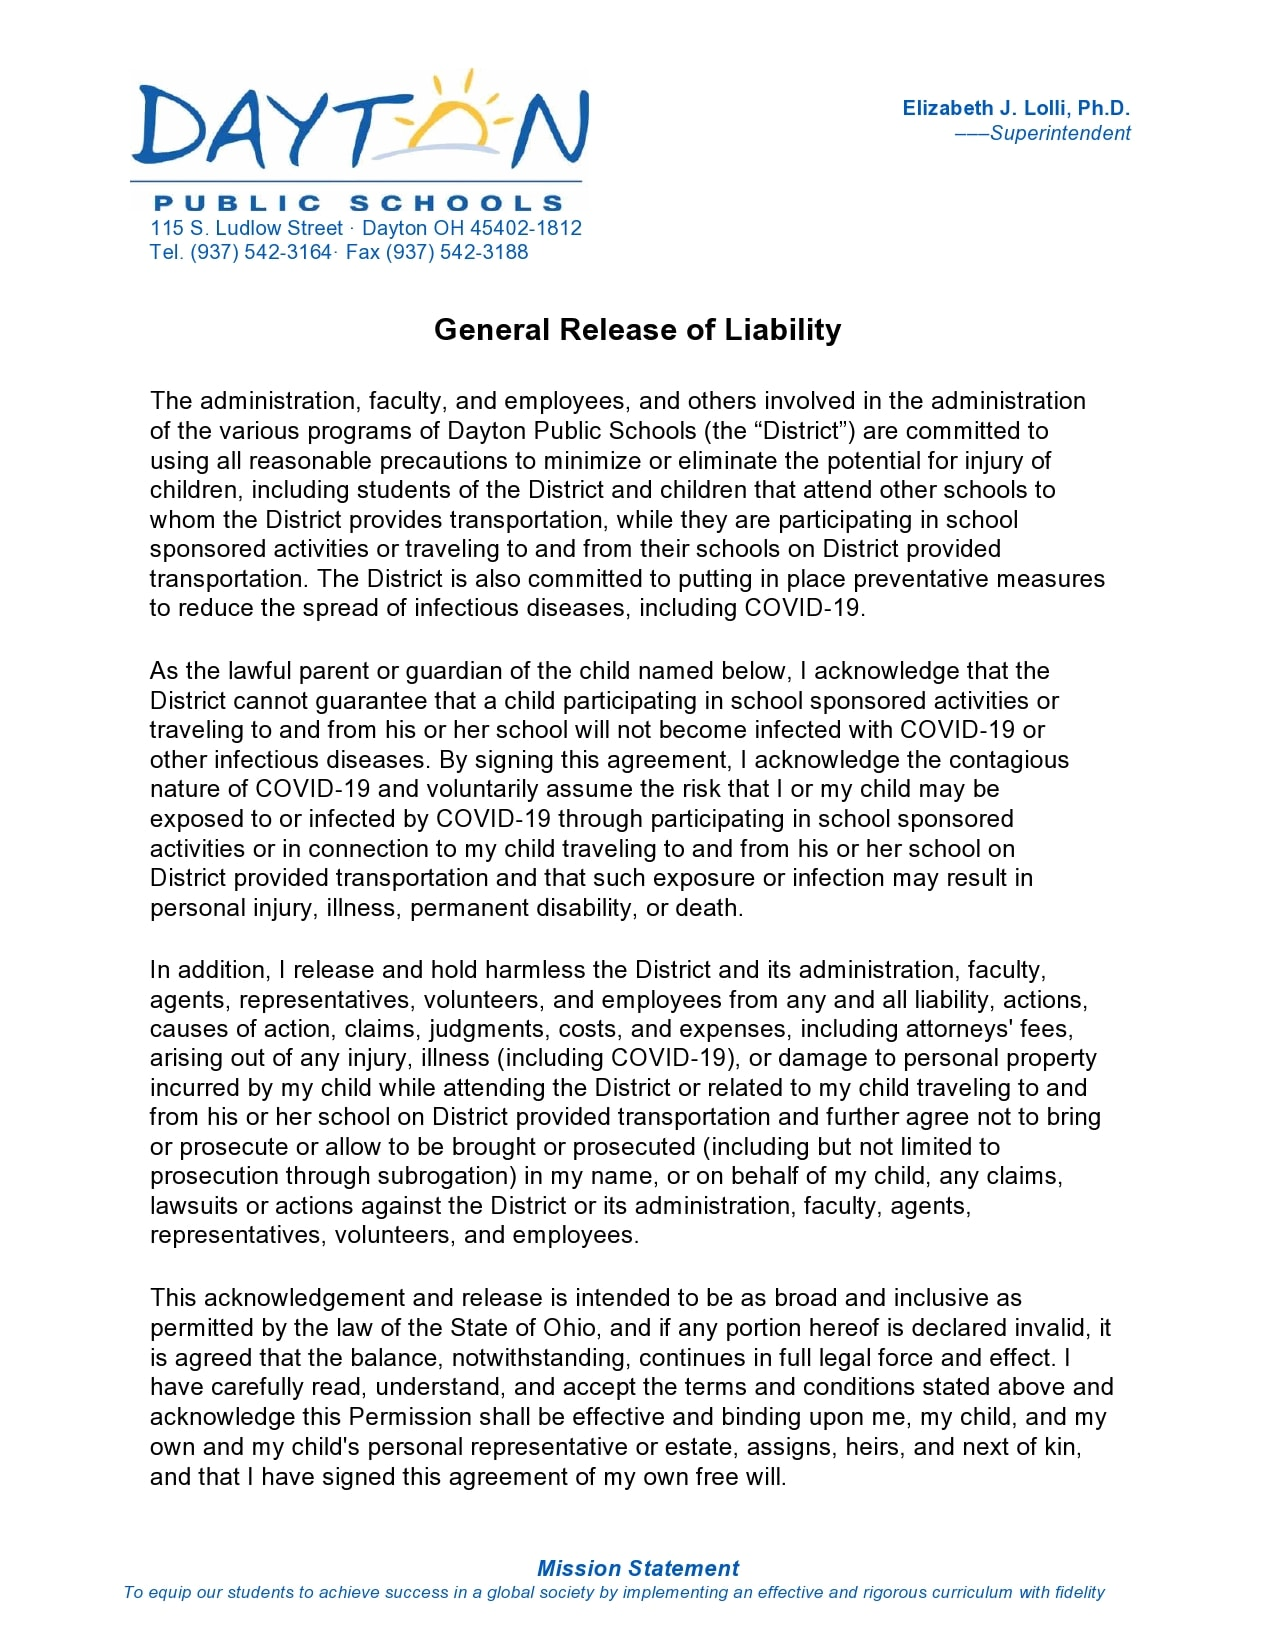 general release of liability form 25